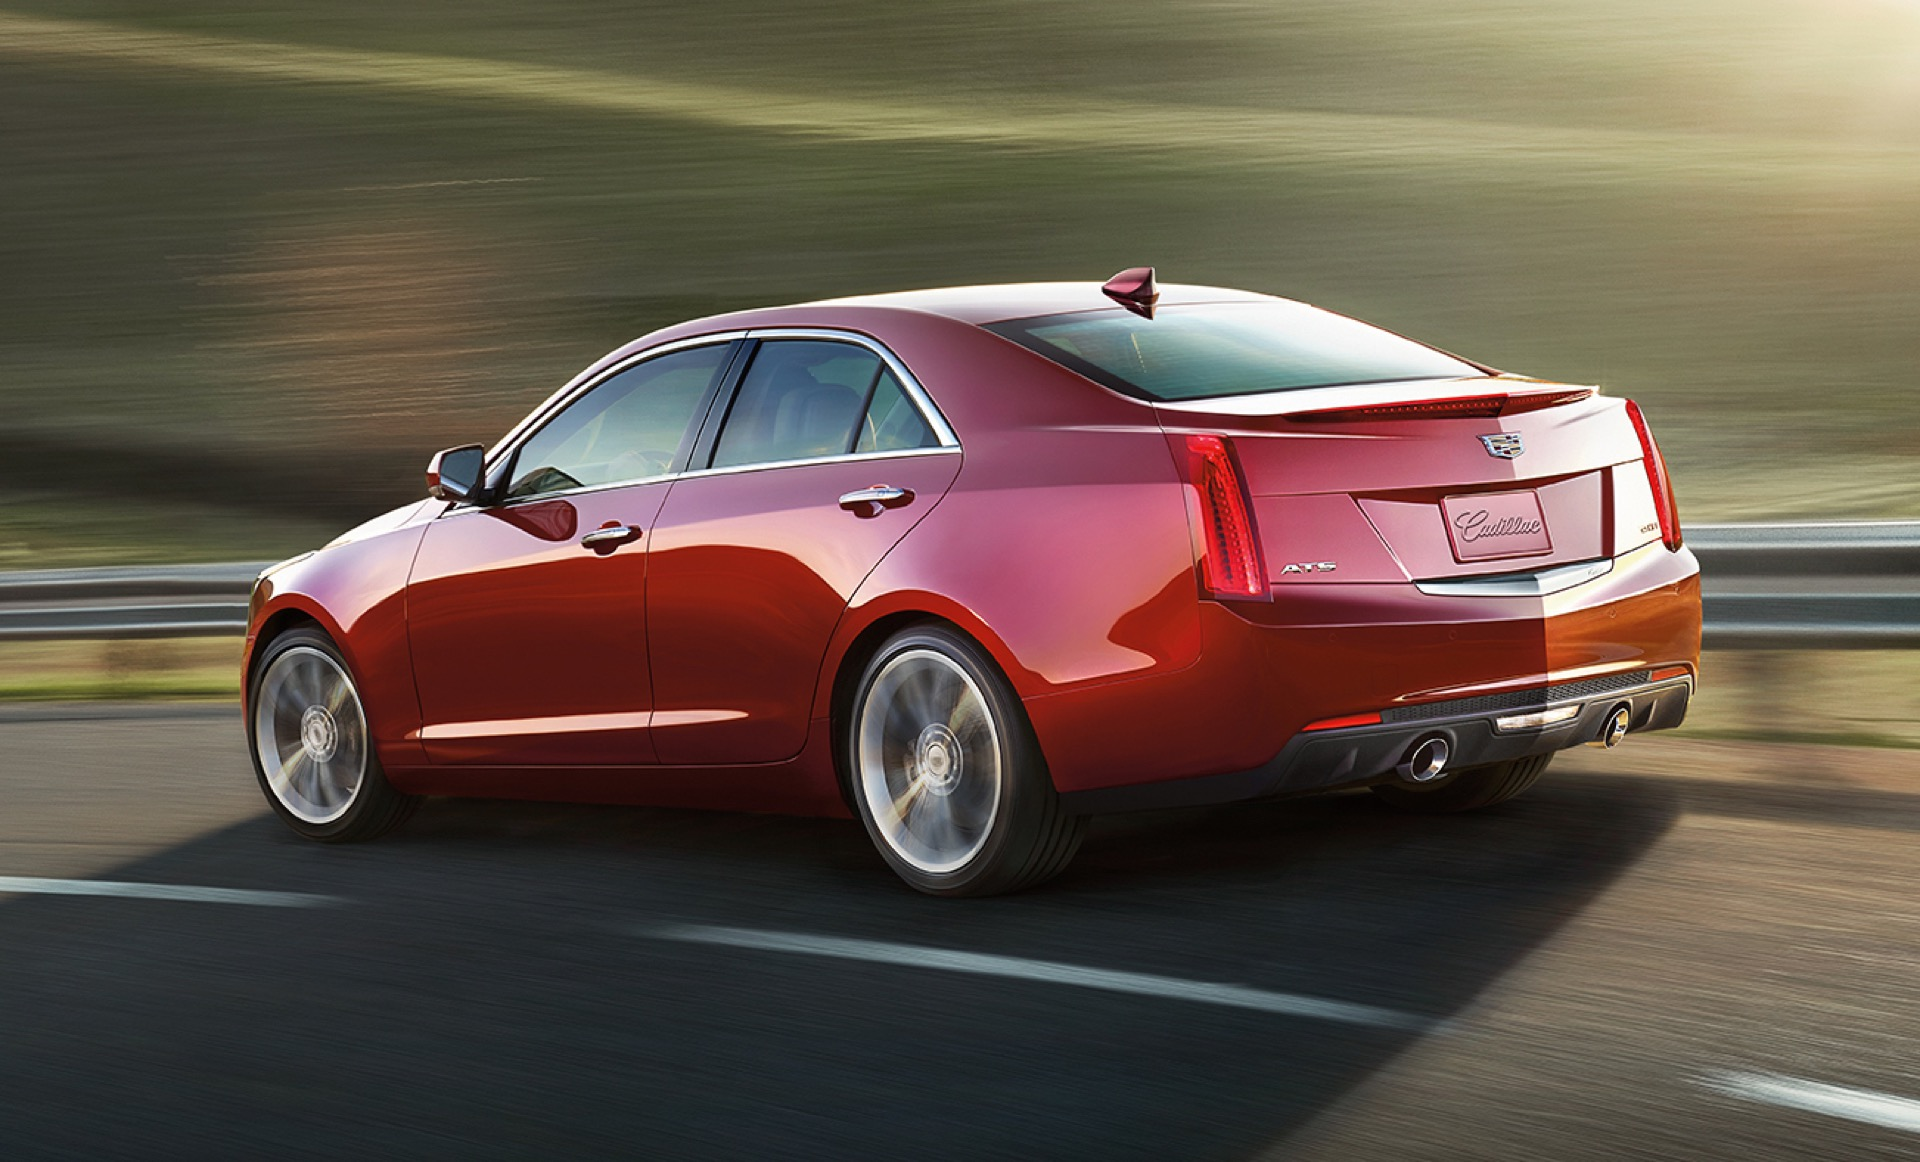 2013 16 Cadillac Ats Recalled For Wiring Flaw That Could Spark Fires Srx Brake